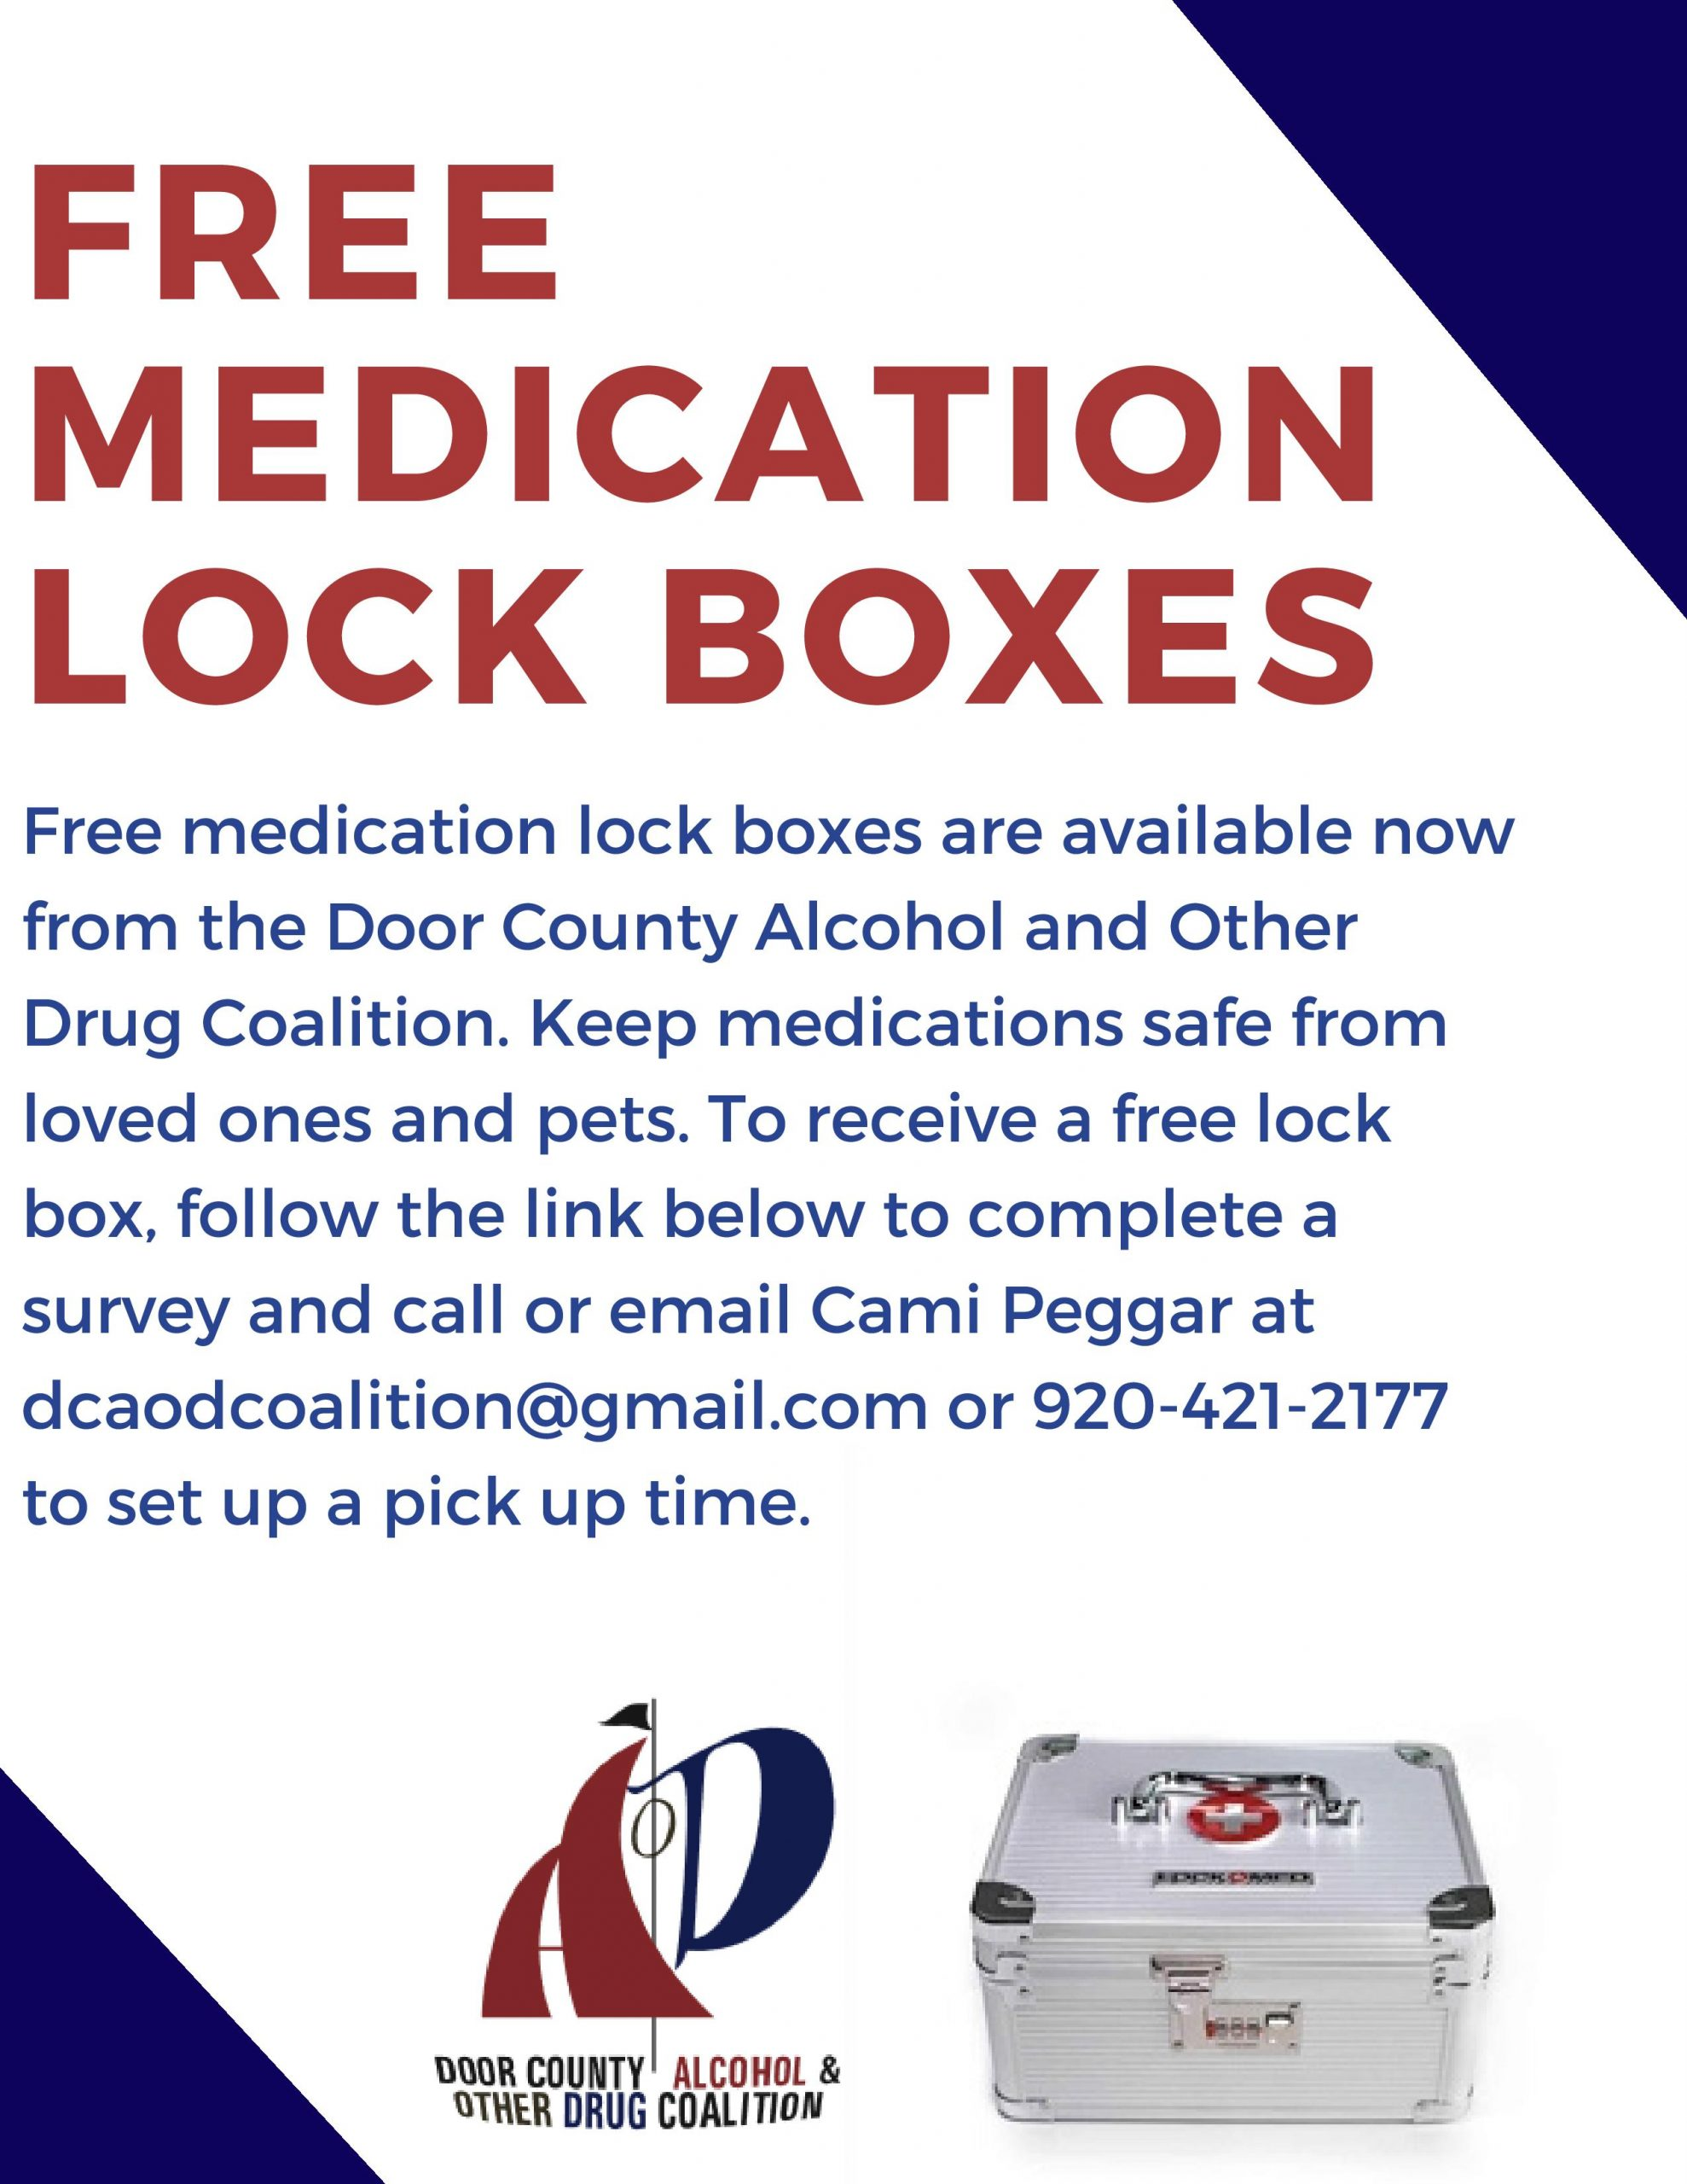 FREE medication lock boxes available